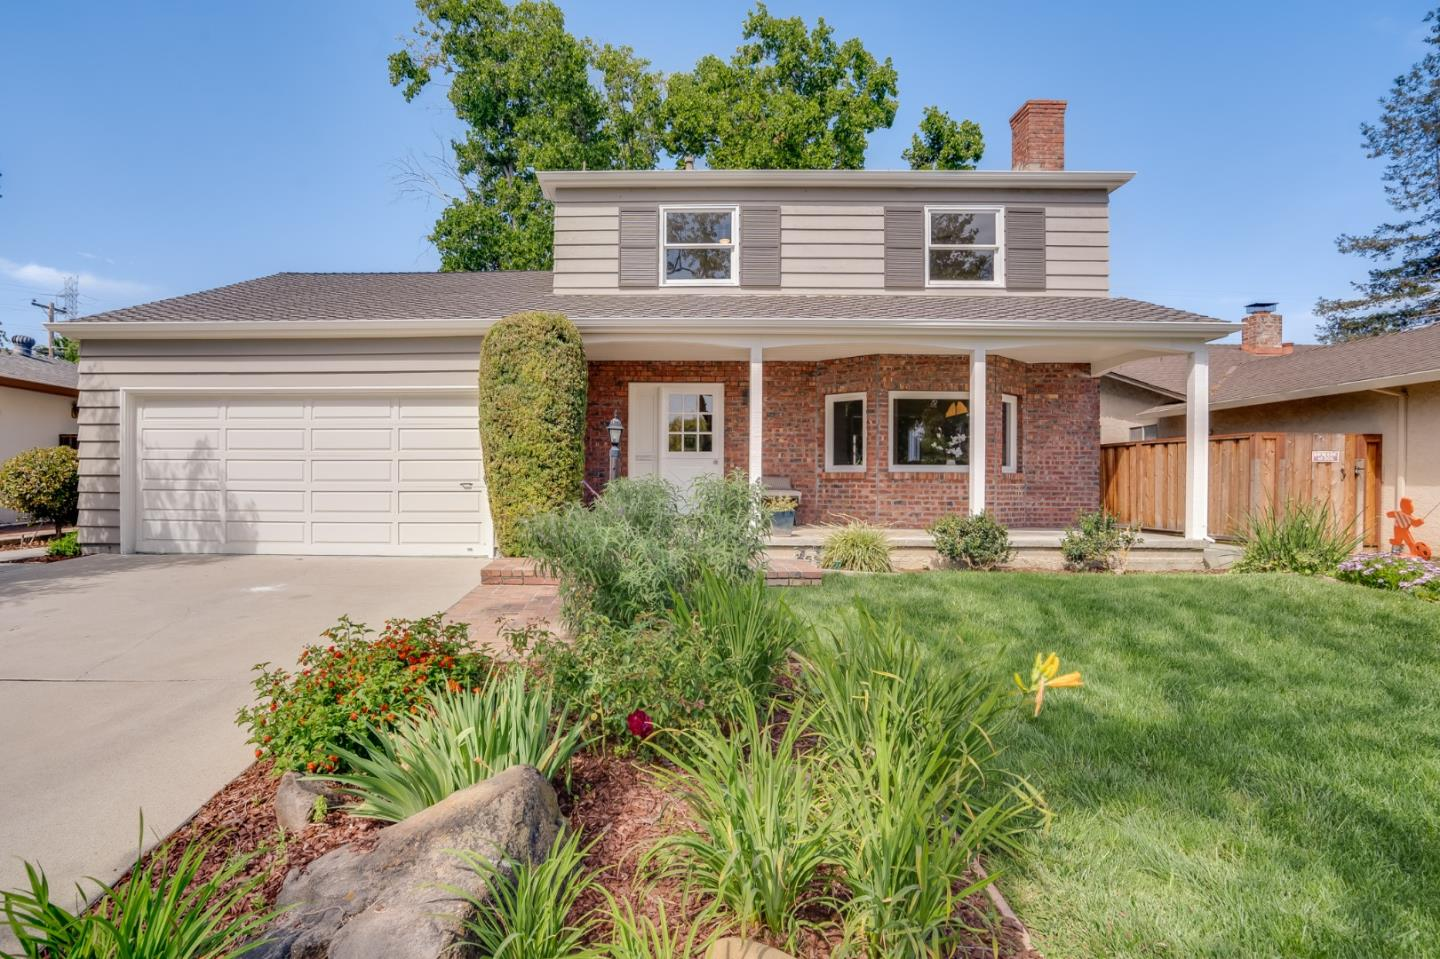 This lovely Los Gatos home is located on a quiet street in the sought after Carlton neighborhood, within walking distance to award-winning schools, shopping and parks. The bright and airy floor plan is fantastic. See yourself cooking the perfect meal in the updated gourmet kitchen with a gas cooktop island, soapstone counters, and stainless appliances. After you enjoy your meal in the large dining room, you have your choice to relax in the formal living room with its built-in bookcase and fireplace, or choose the spacious family room with a sliding door inviting you out to the backyard. Additionally there is an indoor laundry and half bath downstairs. Upstairs you will find 3 huge bedrooms, and 2 updated bathrooms, with the largest room being en-suite. Step outside into the secluded backyard where you can throw the perfect BBQ on the deck, under the pergola, or just relax under all the mature trees. Close to Carlton Elem., Union Middle and Leigh HS. This turn-key home is a must see!